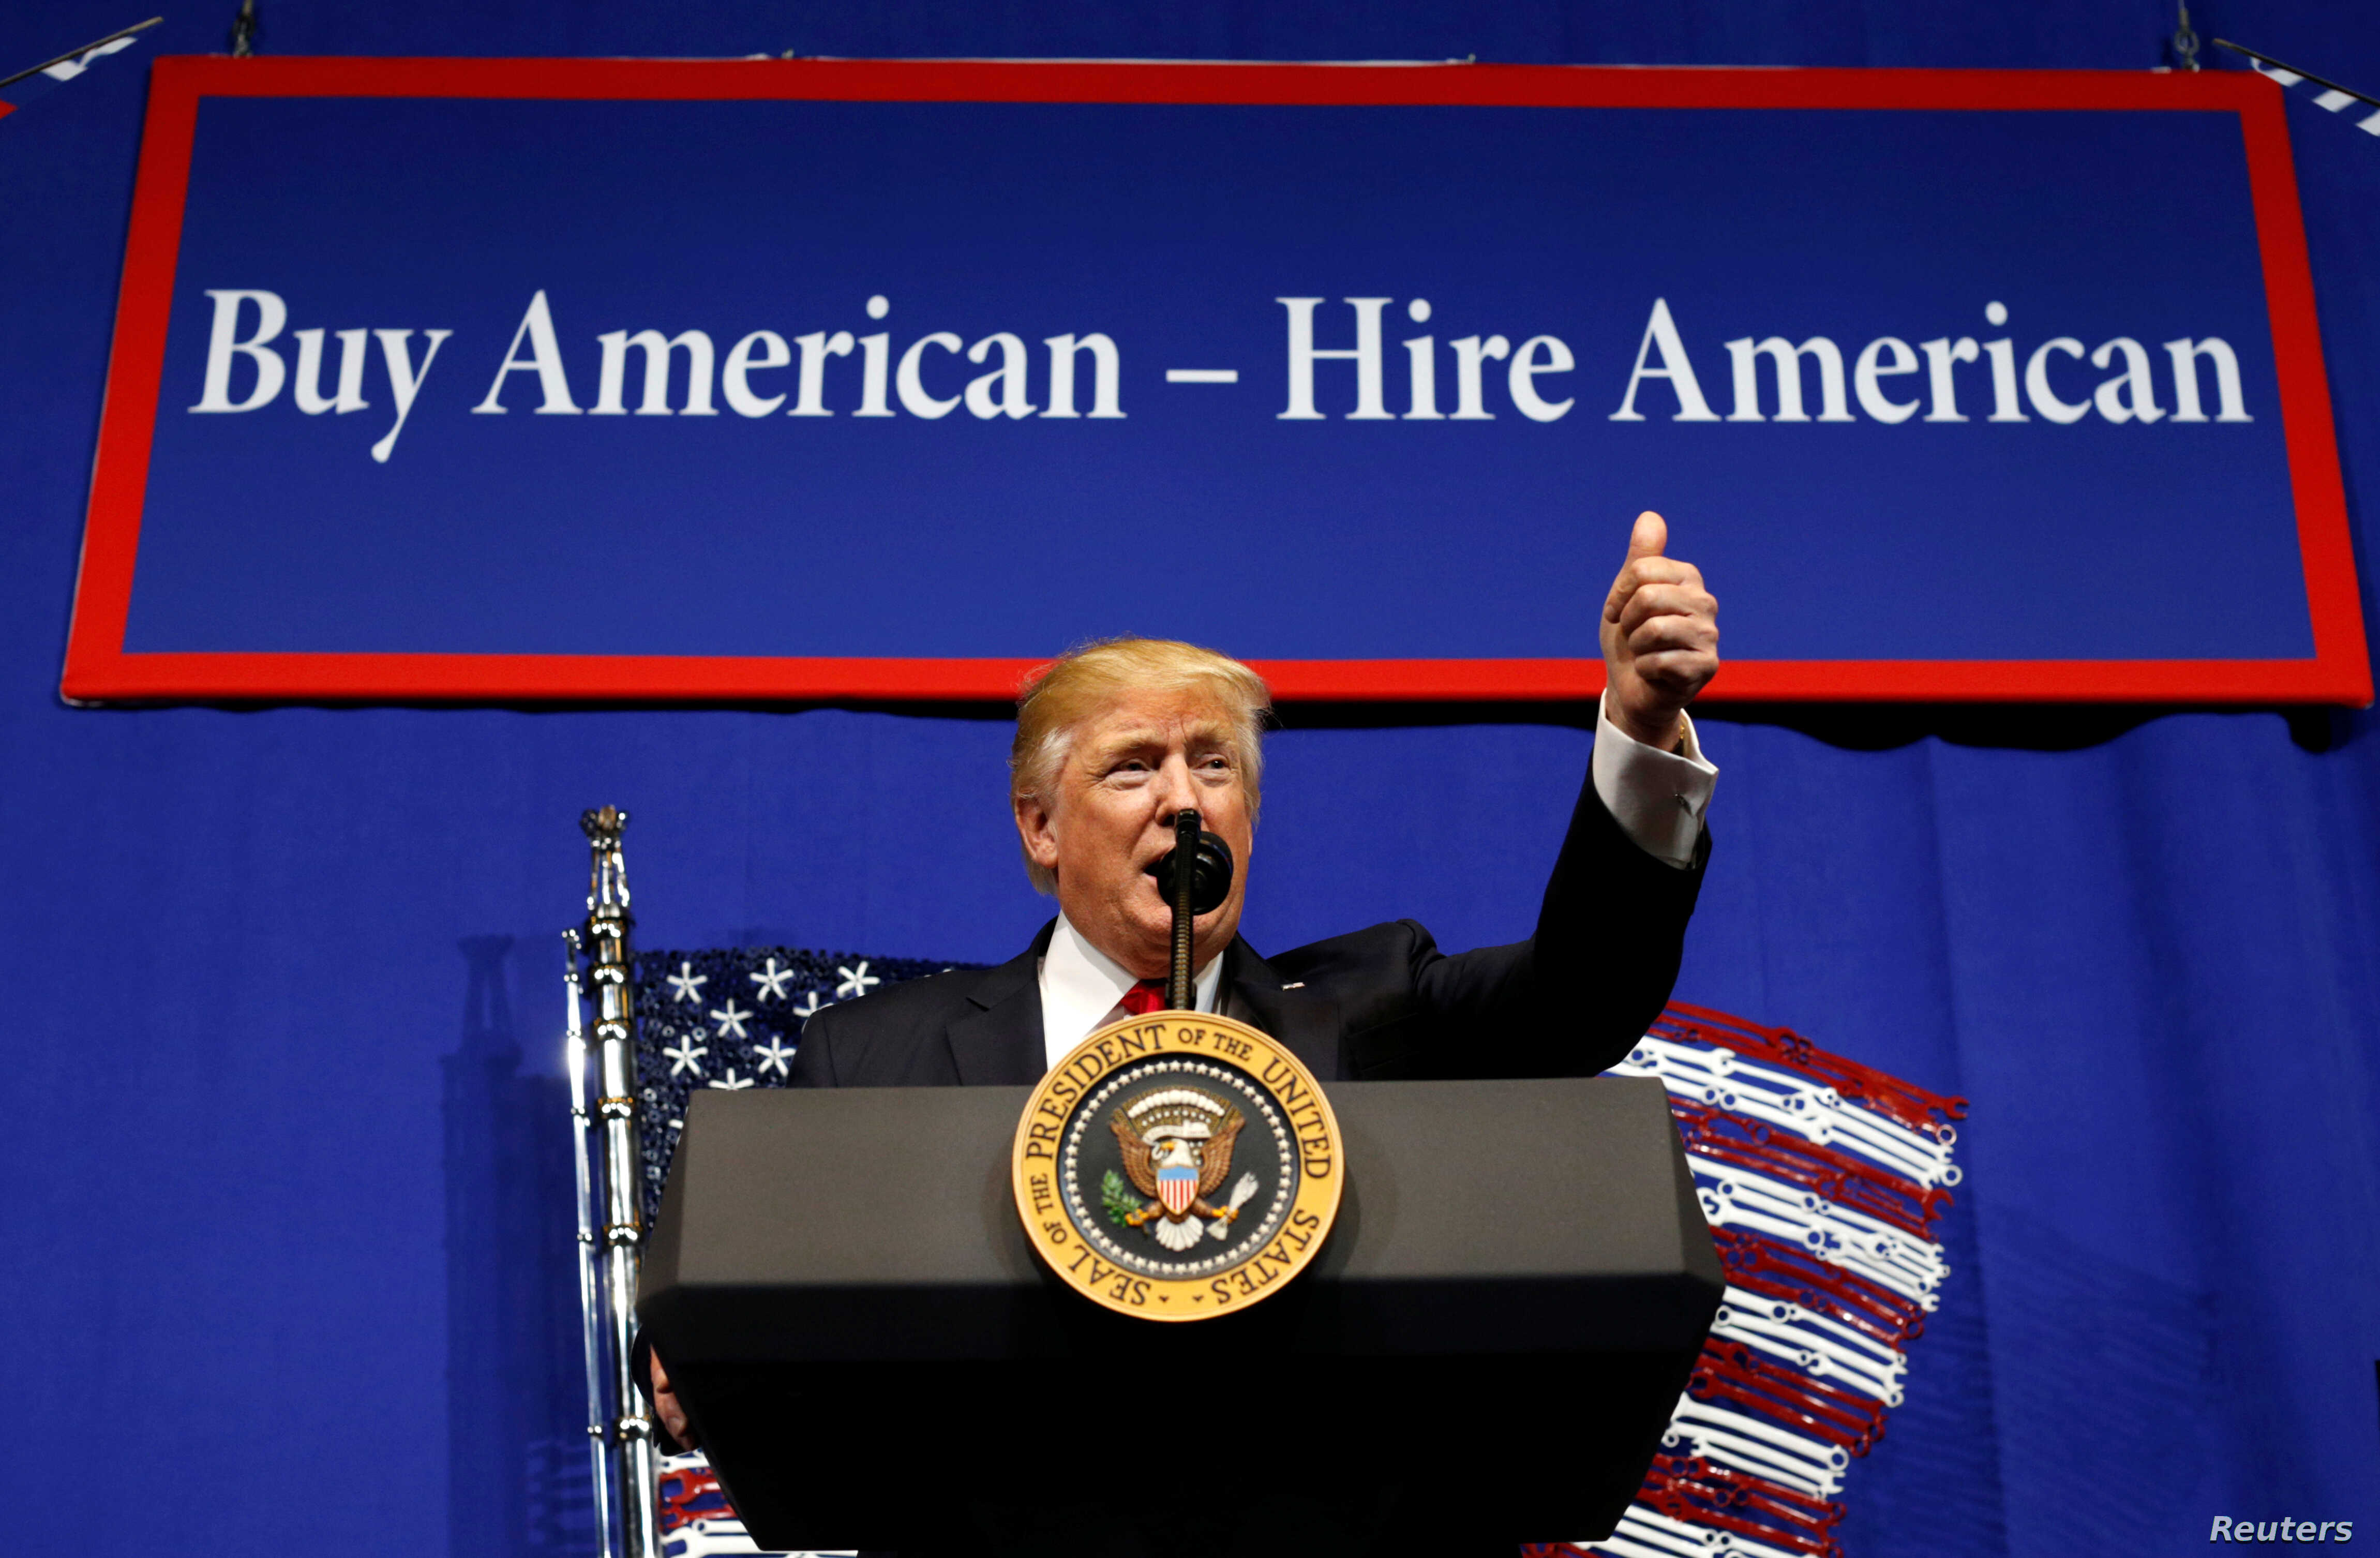 U.S. President Donald Trump speaks before signing an executive order directing federal agencies to recommend changes to a temporary visa program used to bring foreign workers to the United States to fill high-skilled jobs during a visit to the world ...